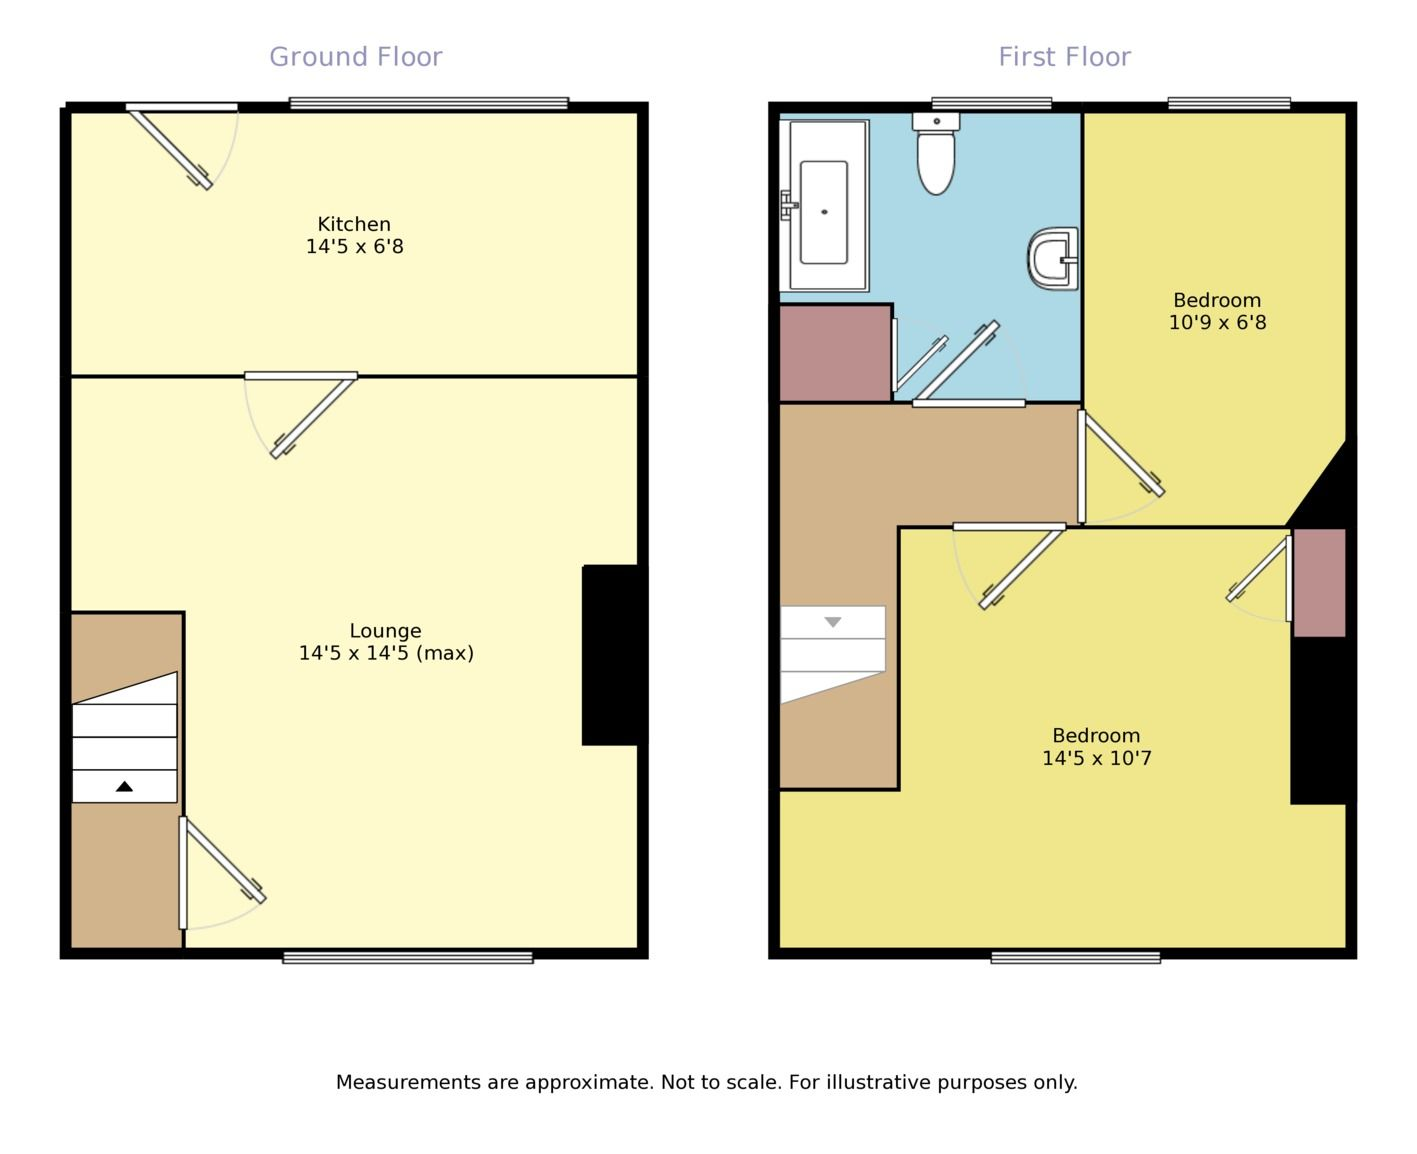 2 bedroom houses for sale in east sussex your move 2 bedroom houses for sale in northamptonshire your move